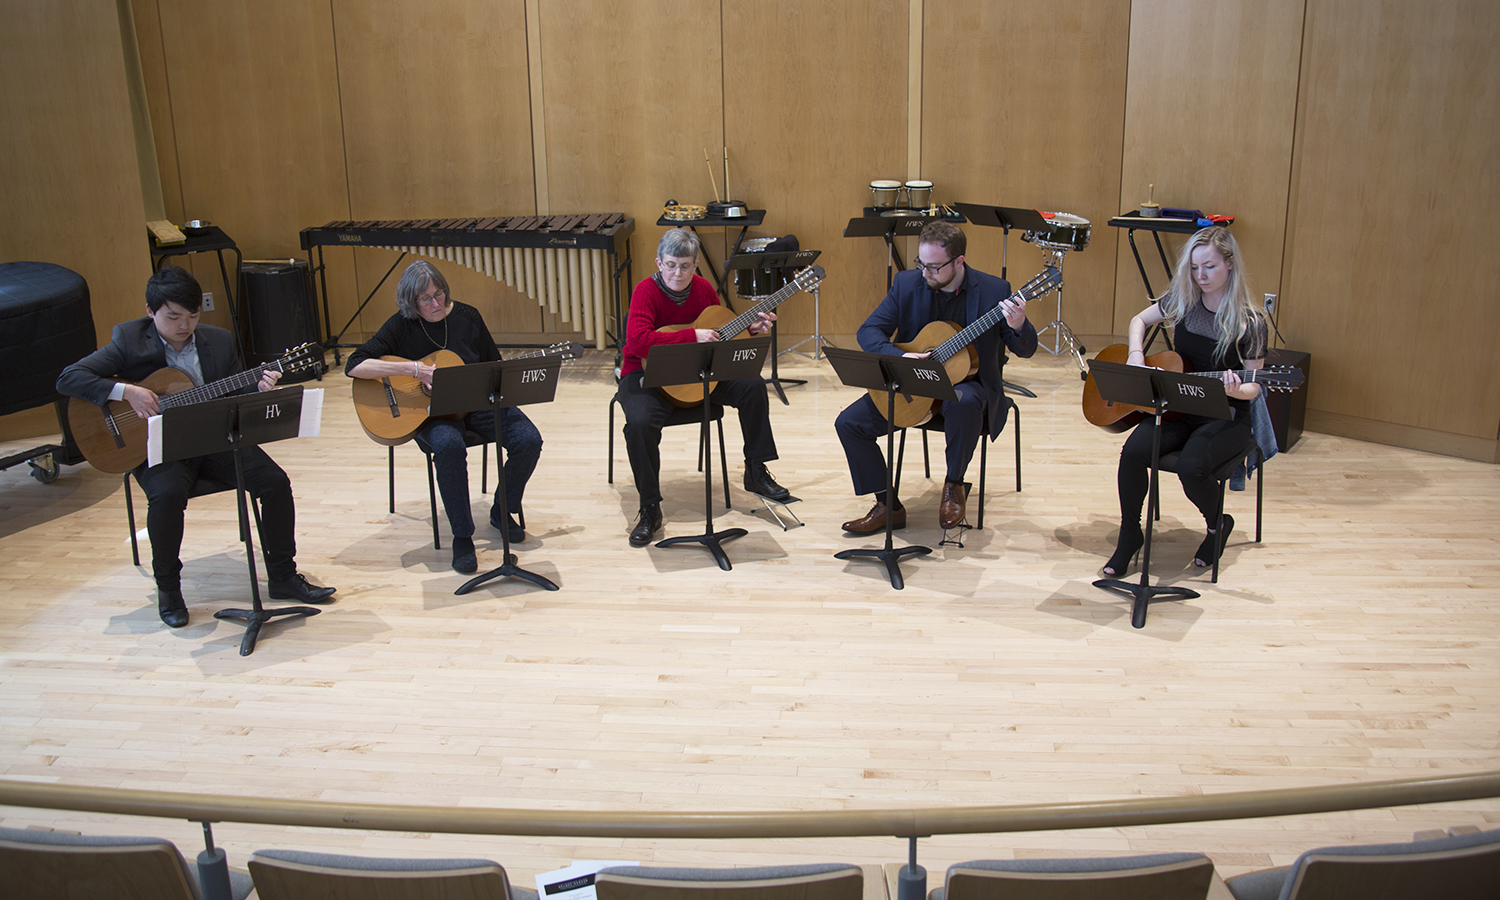 Members of the HWS Classical Guitar Ensemble perform in Froelich Hall in the Gearan Center for the Performing Arts.